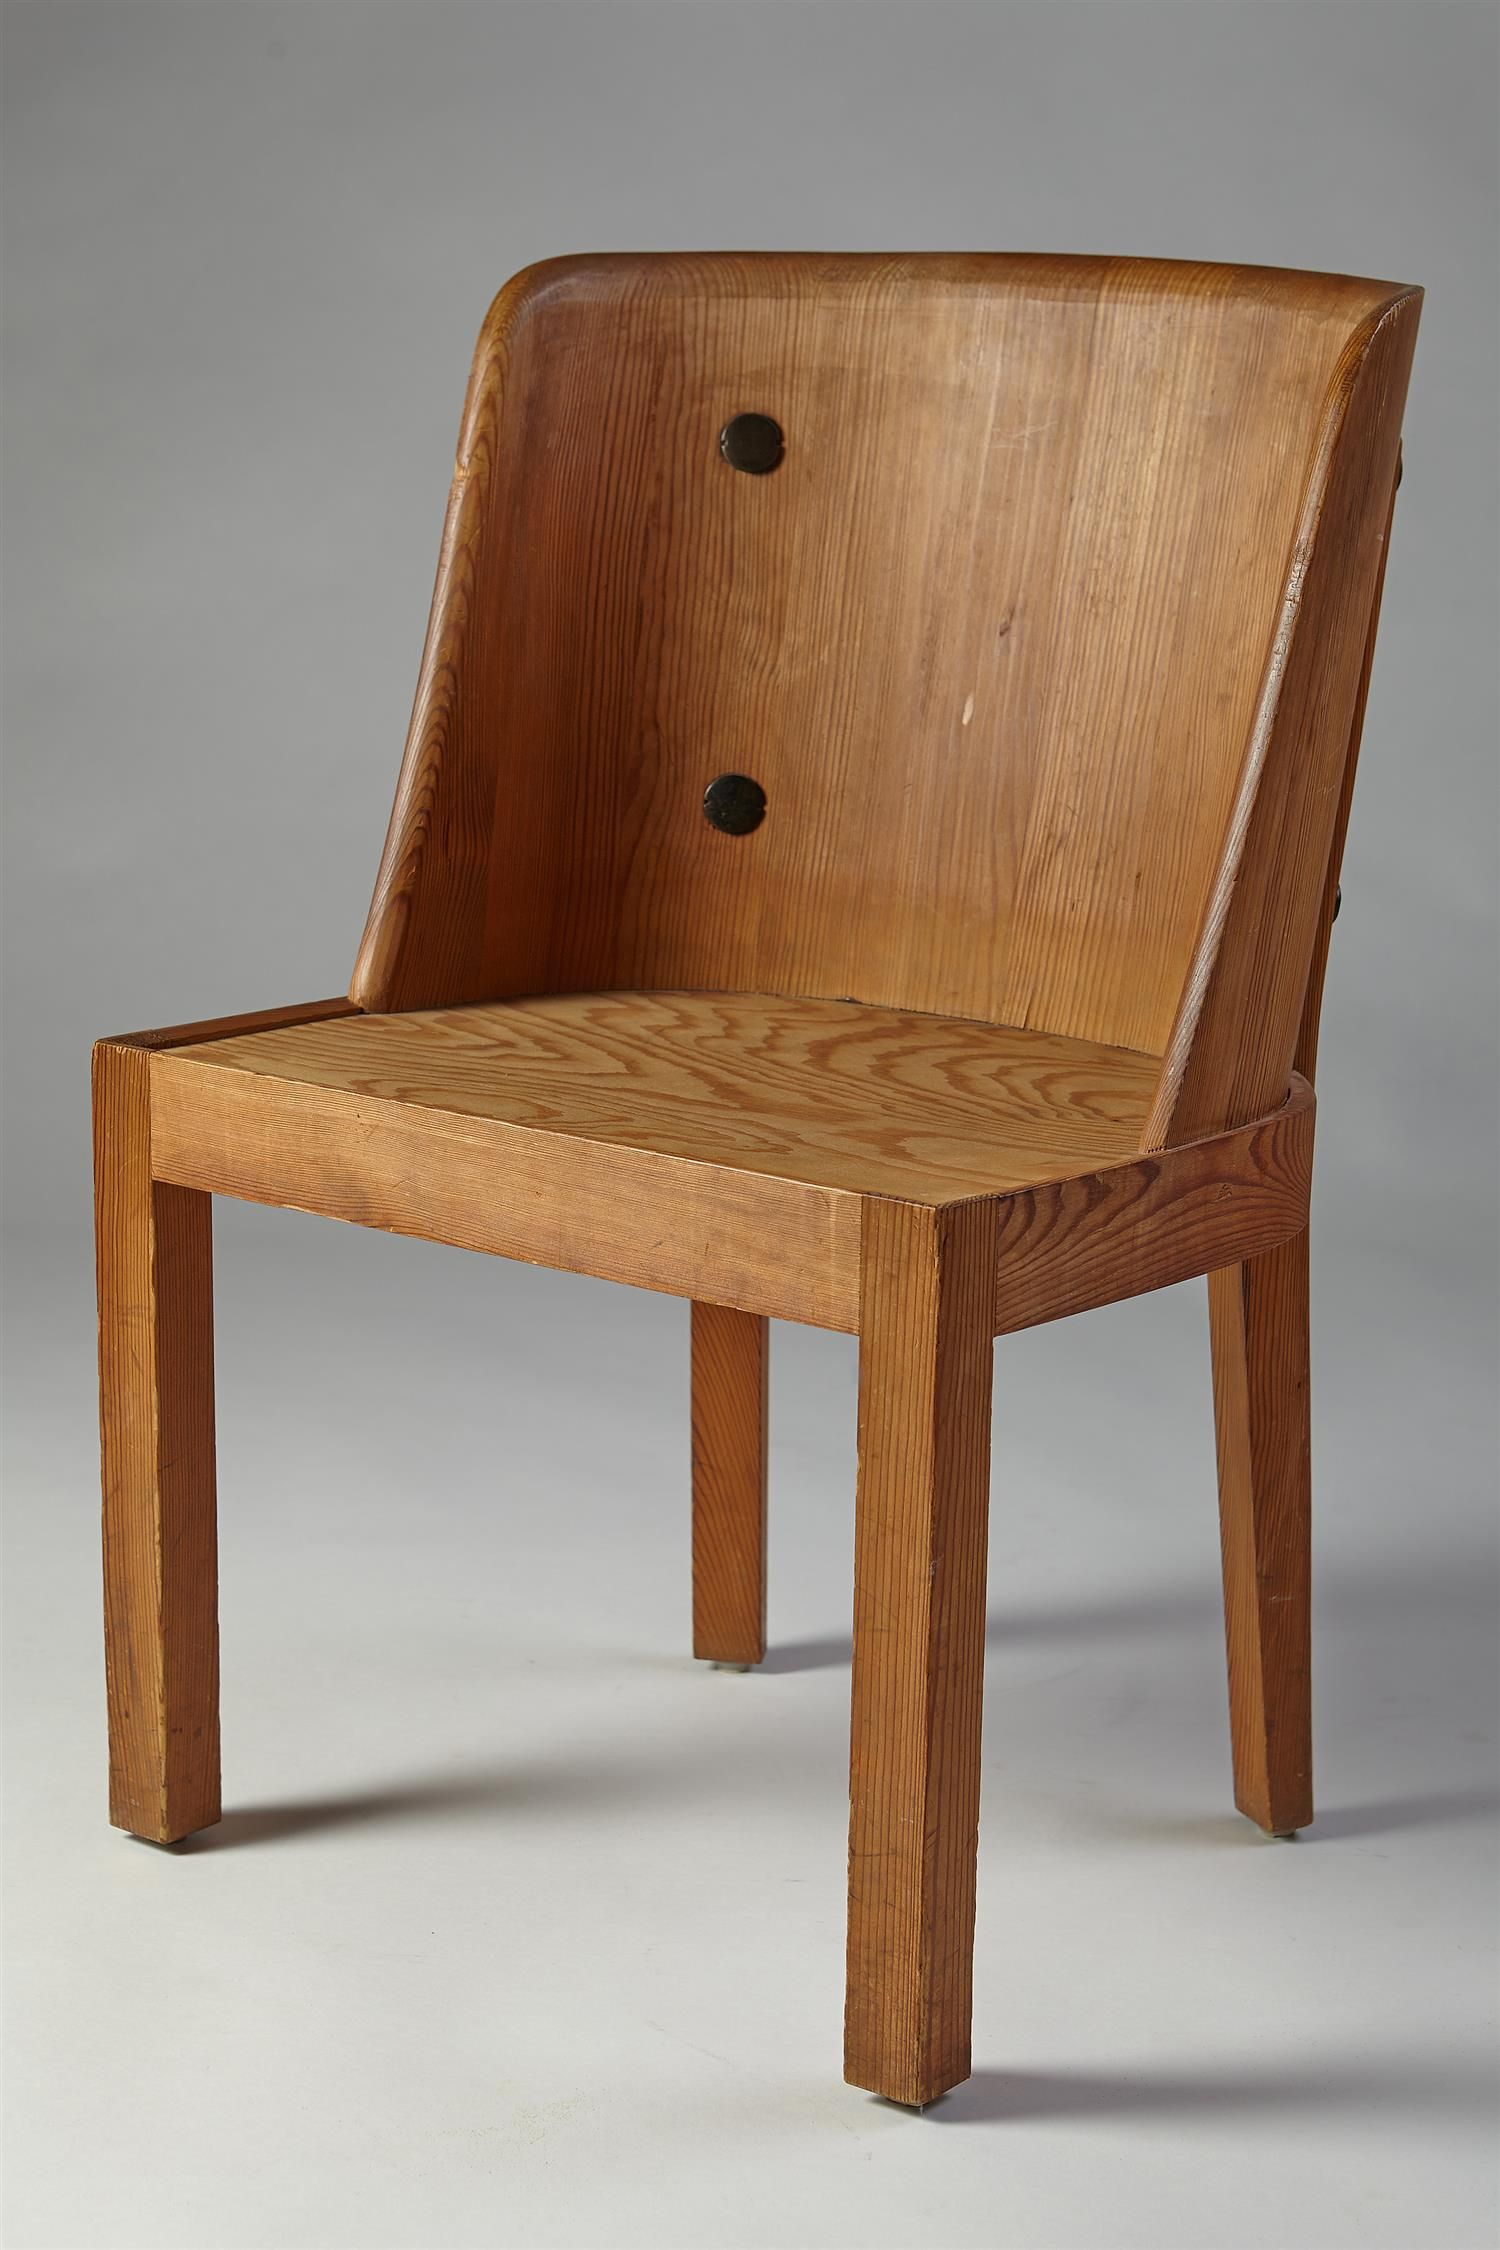 Axel einar hjorth solid pine and iron 39 lov 39 chair for nk for Chair design 1930